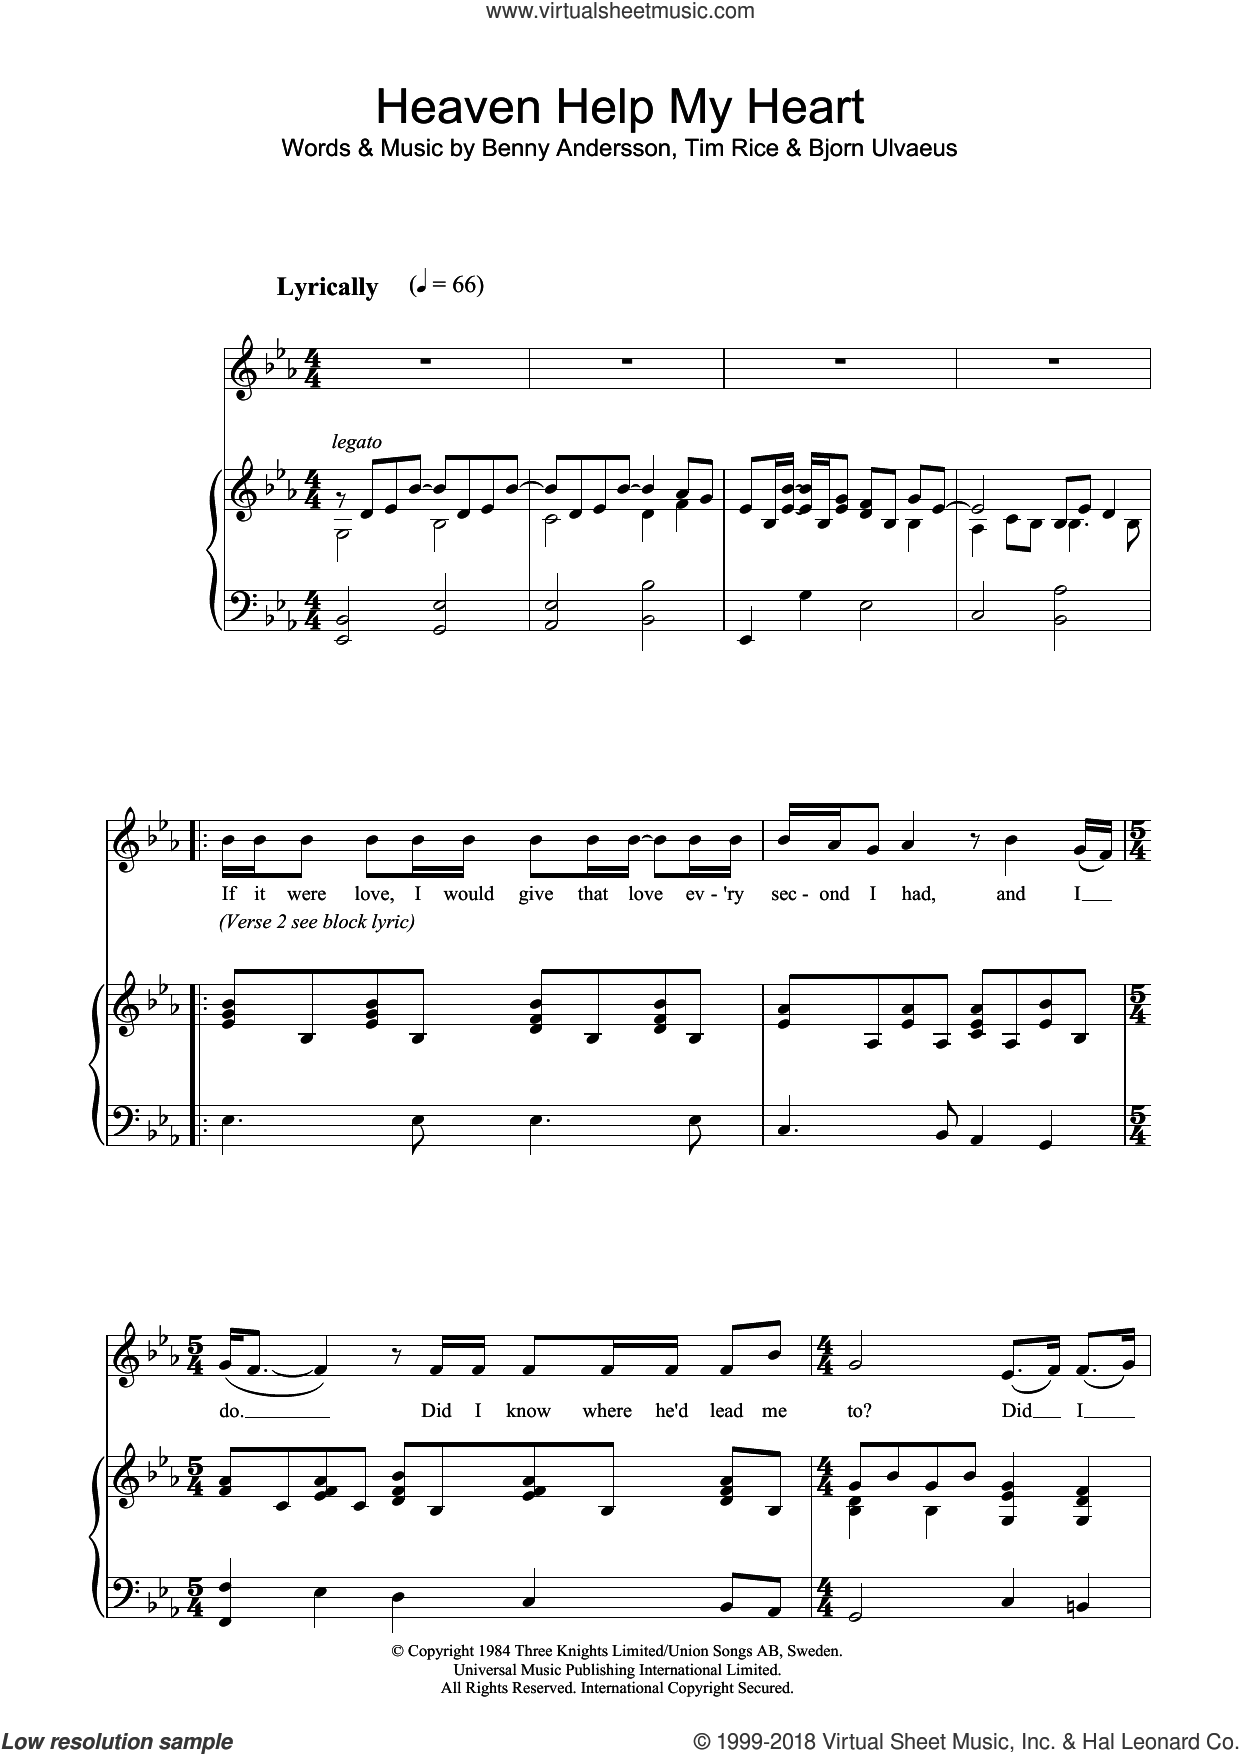 Heaven Help My Heart sheet music for voice, piano or guitar by Bjorn Ulvaeus, Benny Andersson and Tim Rice. Score Image Preview.